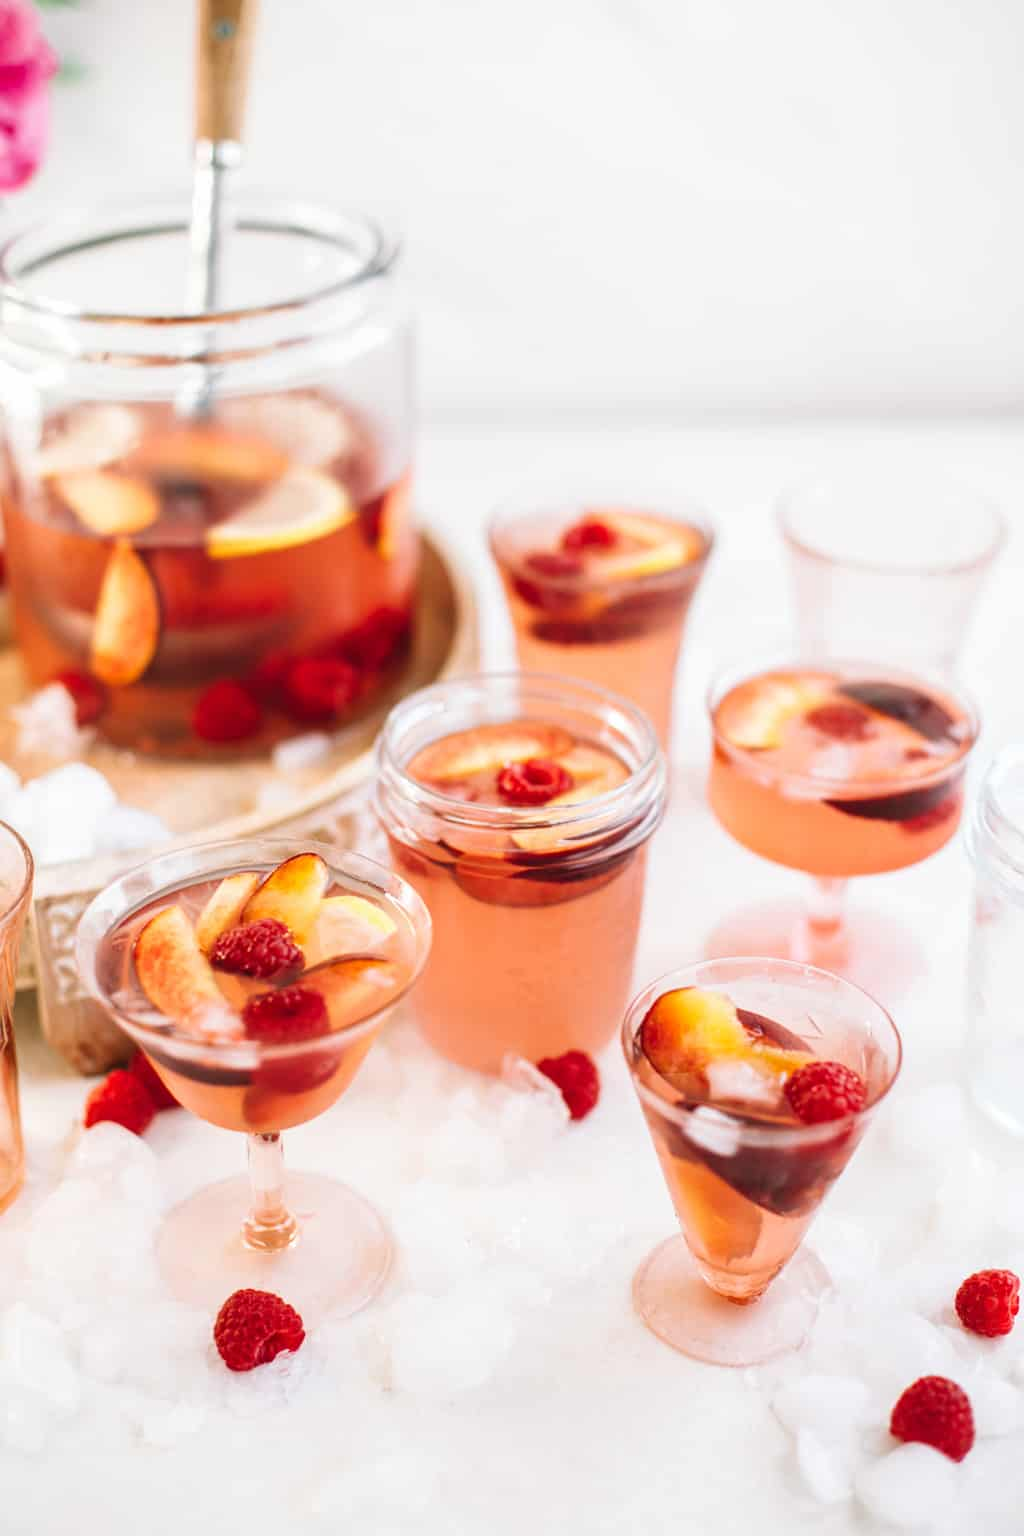 Rosè sangria with raspberries and peaches in cocktail glasses.